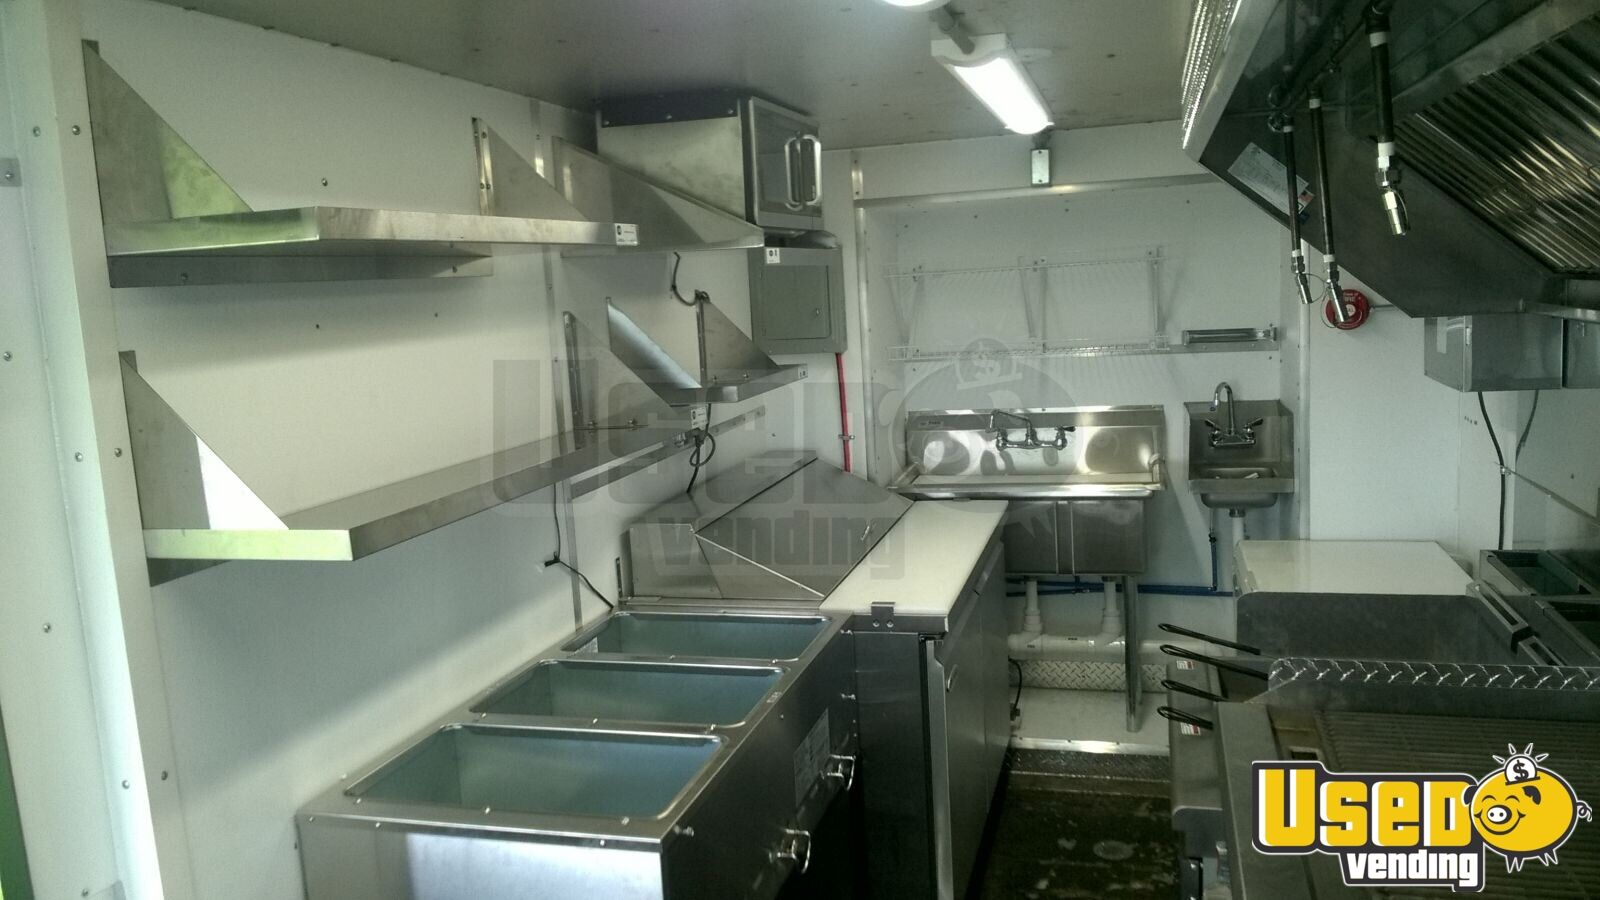 Food Truck Backup Camera Ohio Gas Engine for Sale - 7